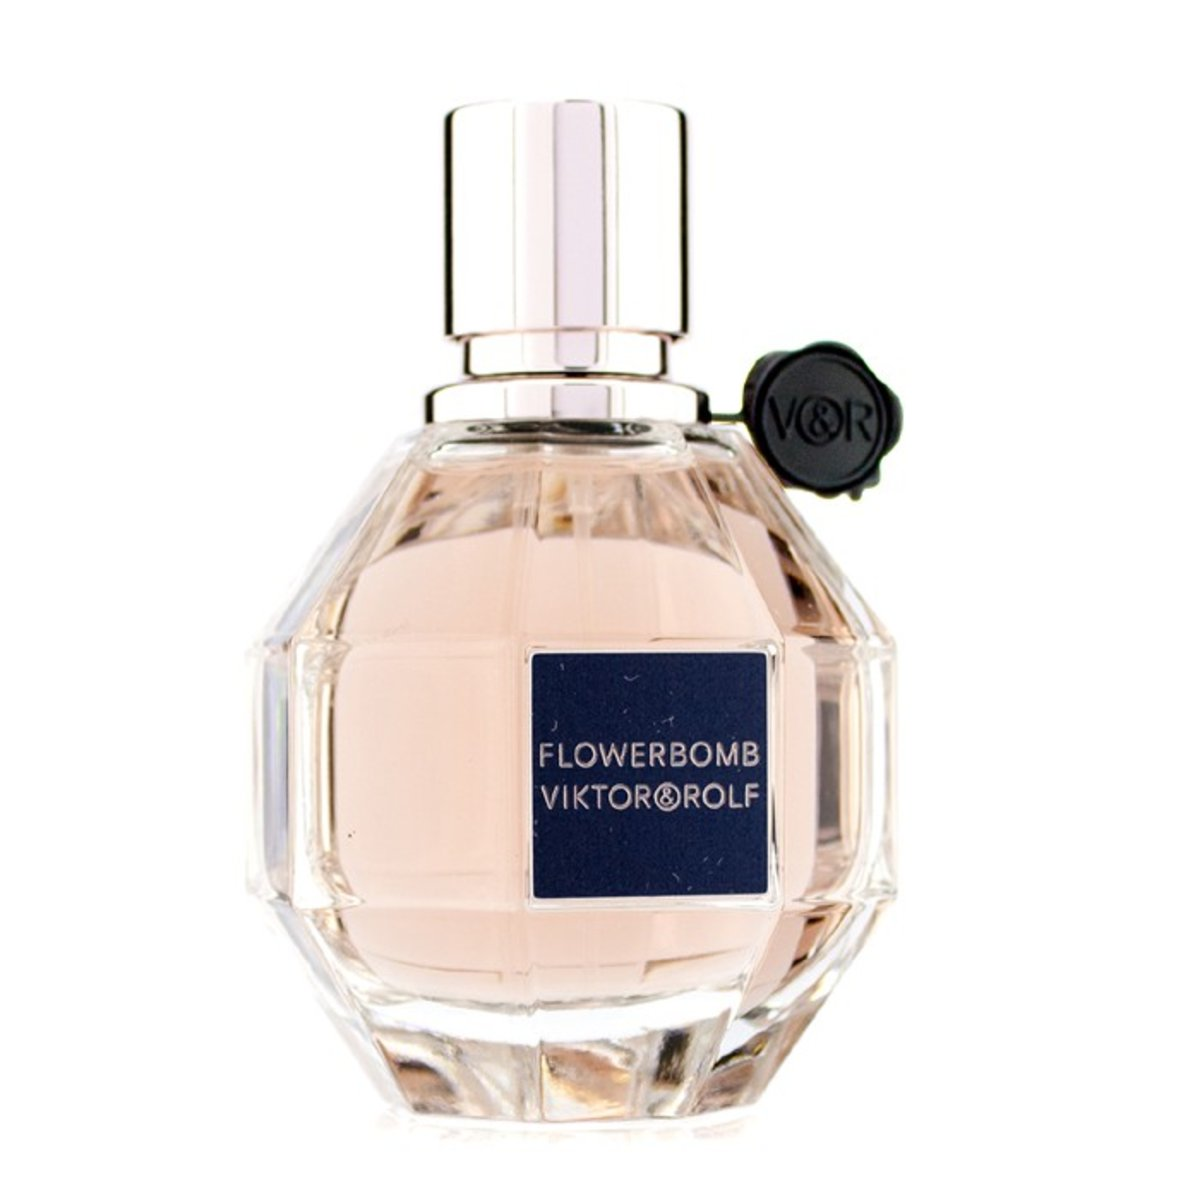 Flowerbomb Eau De Parfum Spray 50ml/1.7oz -[Parallel Import Product]